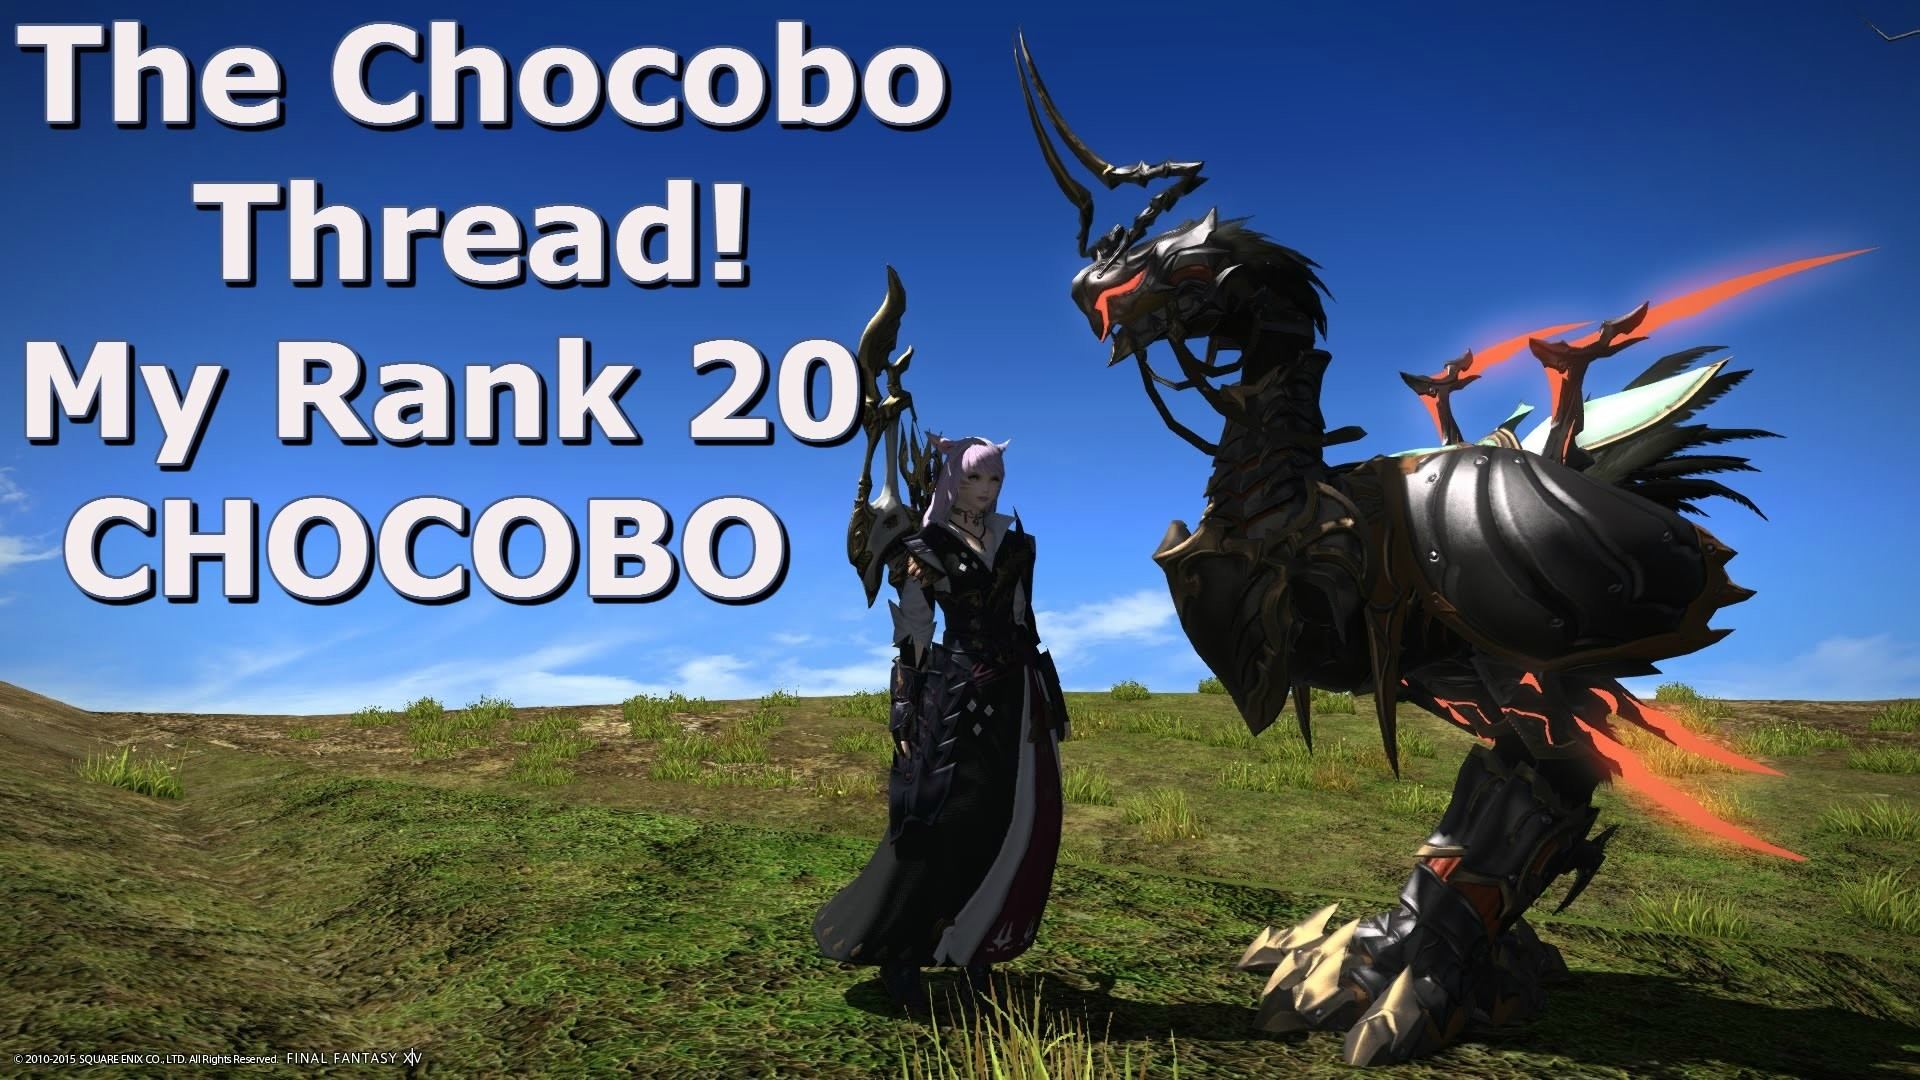 Best Chocobo Barding 1688793 Hd Wallpaper Backgrounds